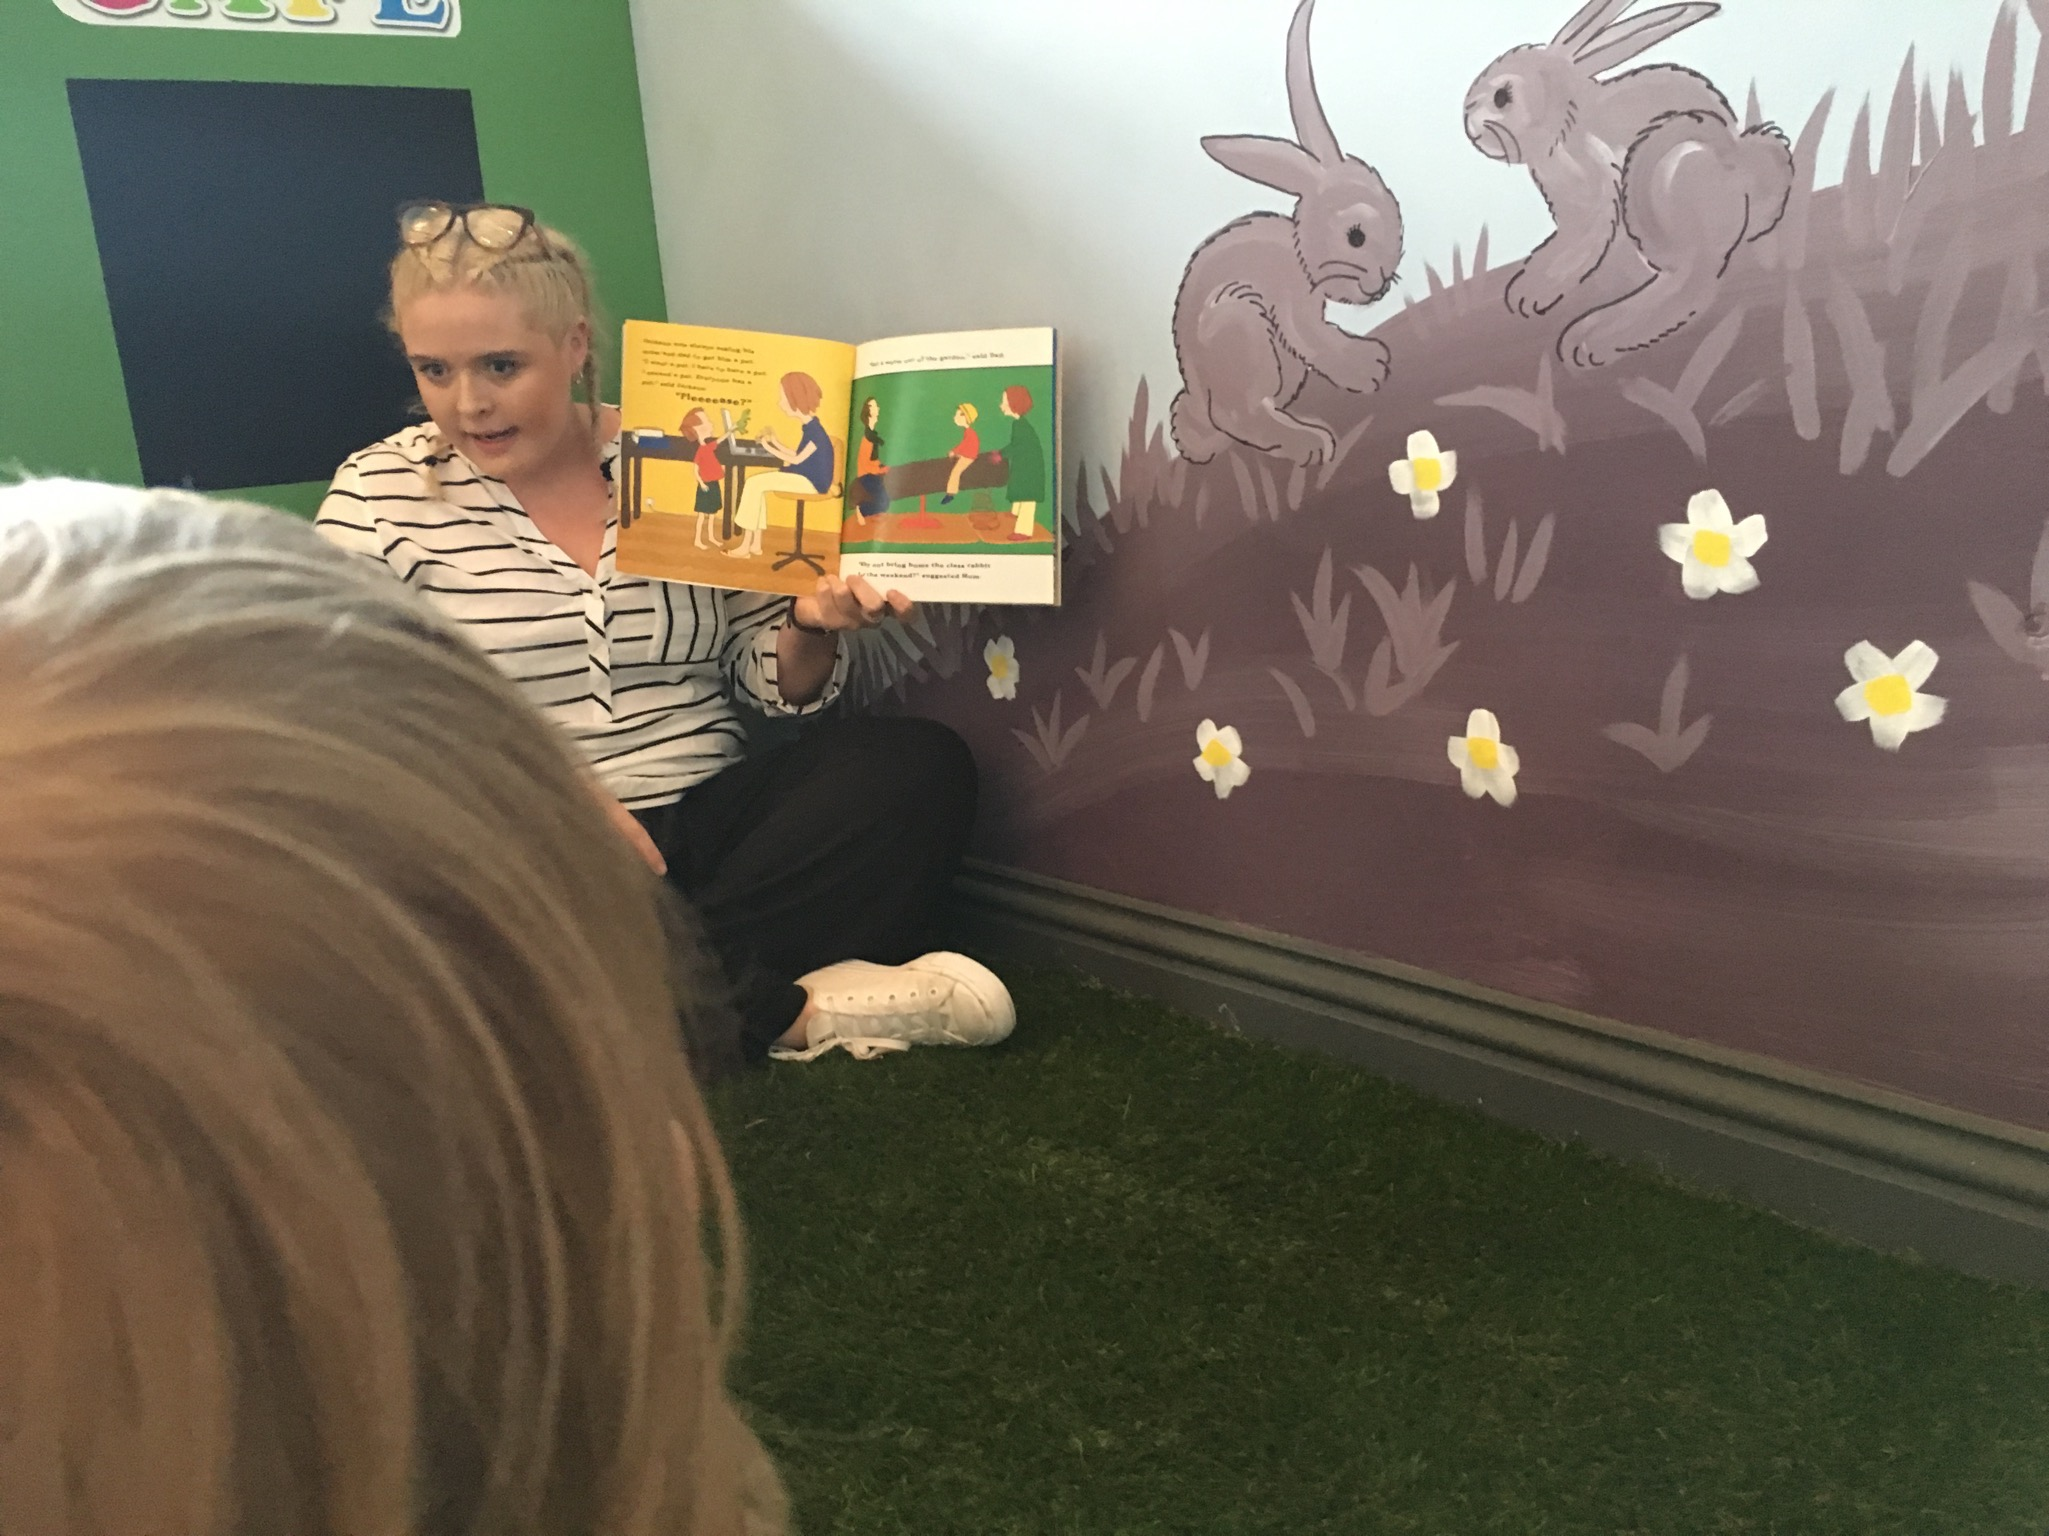 During story time